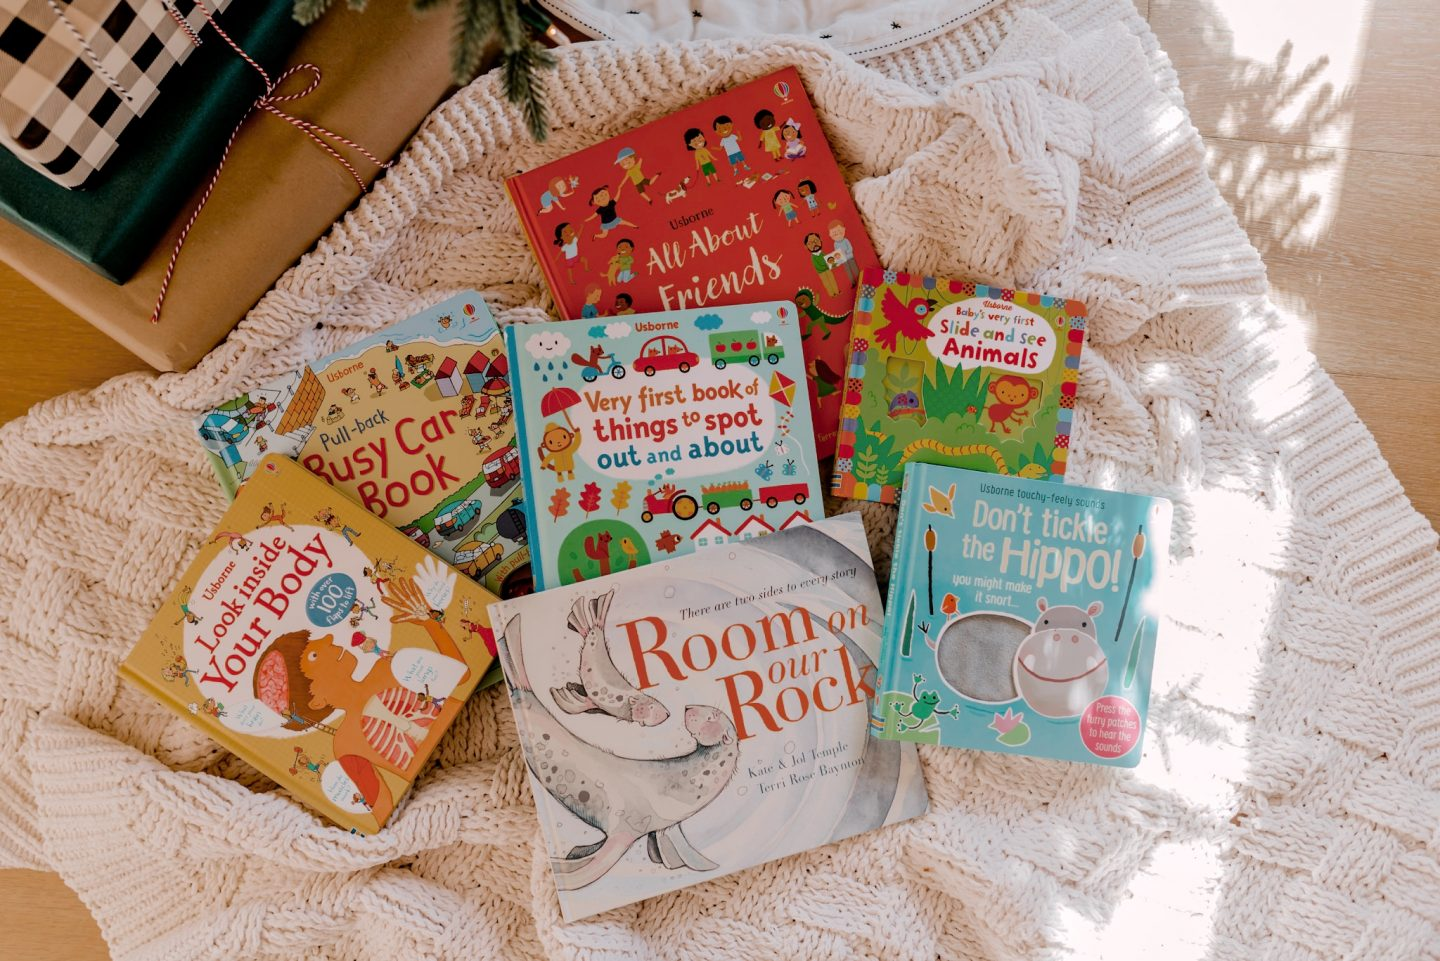 12 days of books for Christmas |12 Days of Books by popular San Diego lifestyle blog, Navy Grace: image of 12 children's books under a Christmas tree.